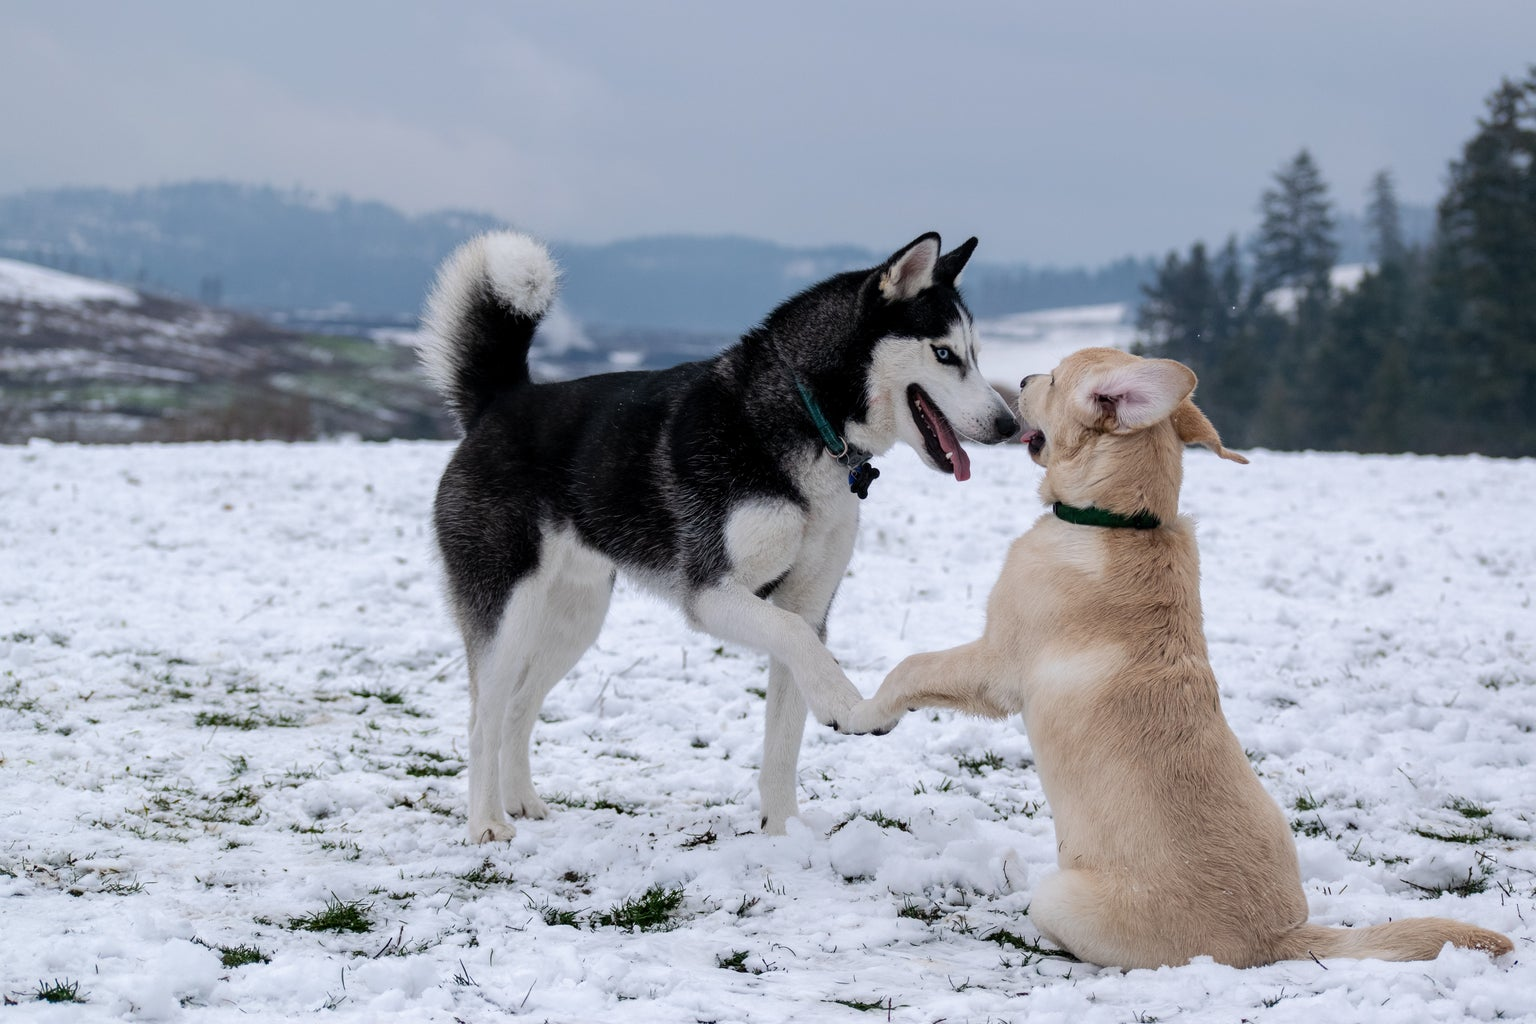 Husky and Puppy playing in snow